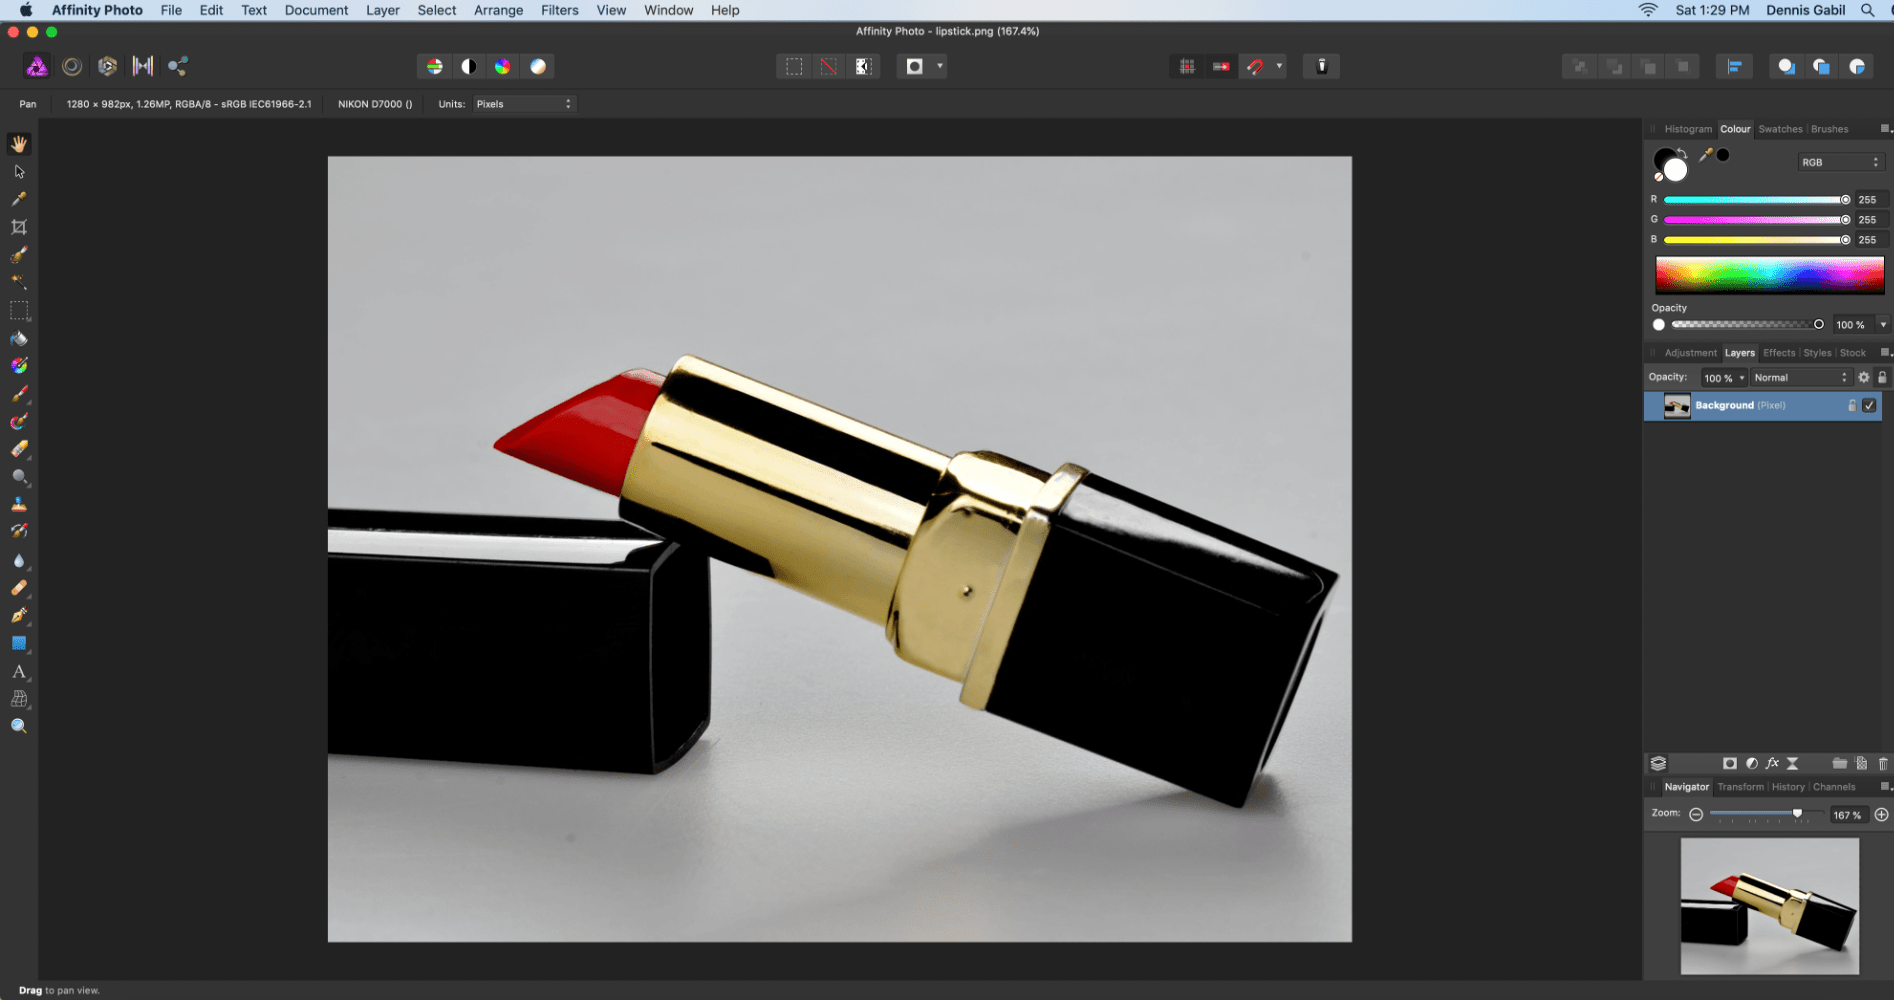 Affinity Photo: Select and Change Color (Recolor)